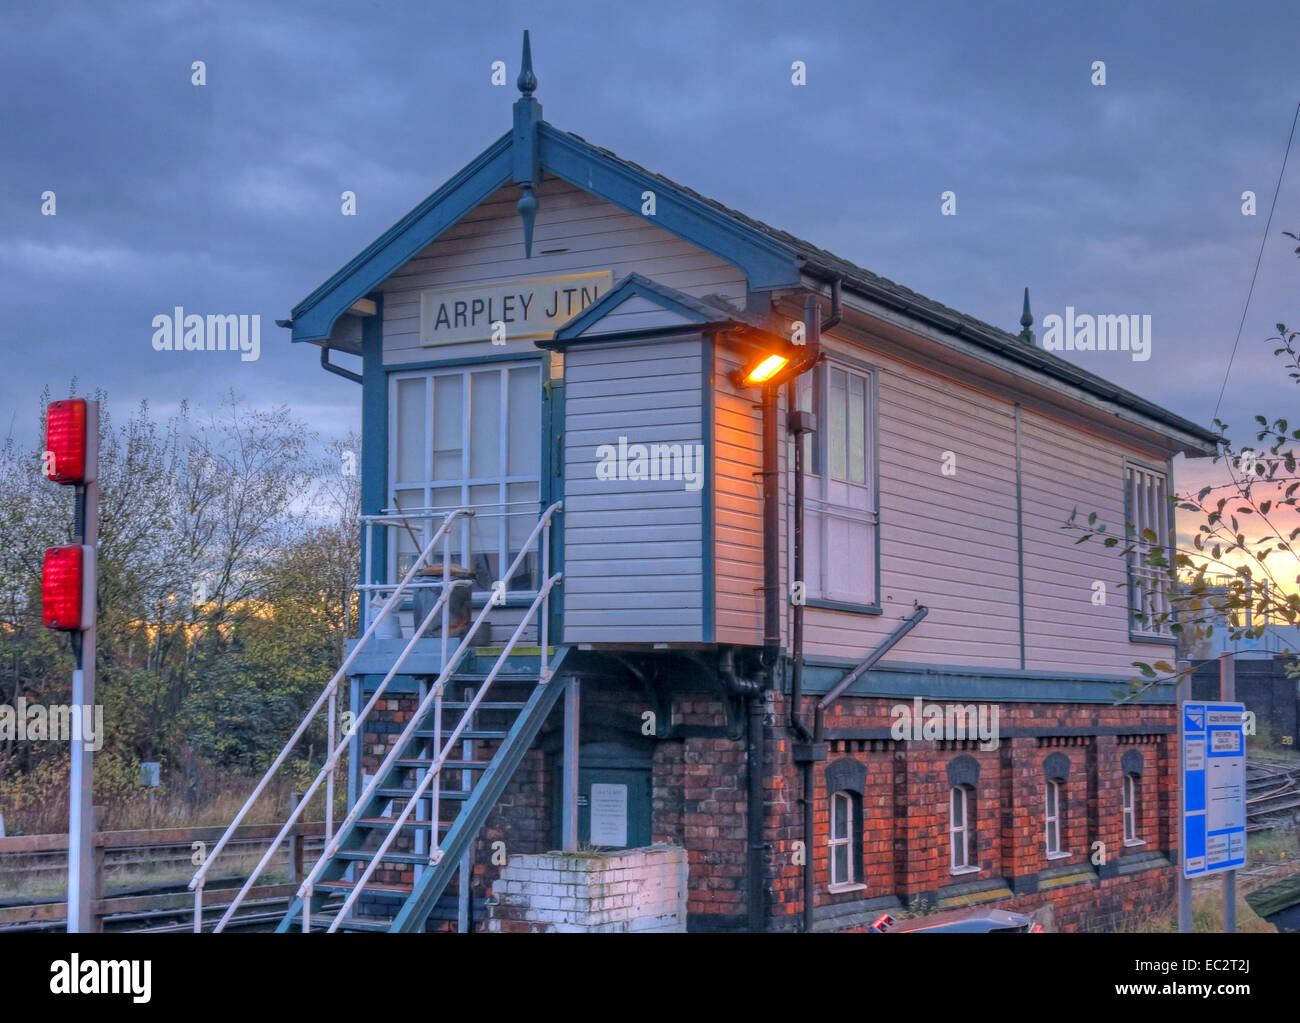 Arpley Junction Signalbox, Warrington, Cheshire, England, UK at dusk - Stock Image